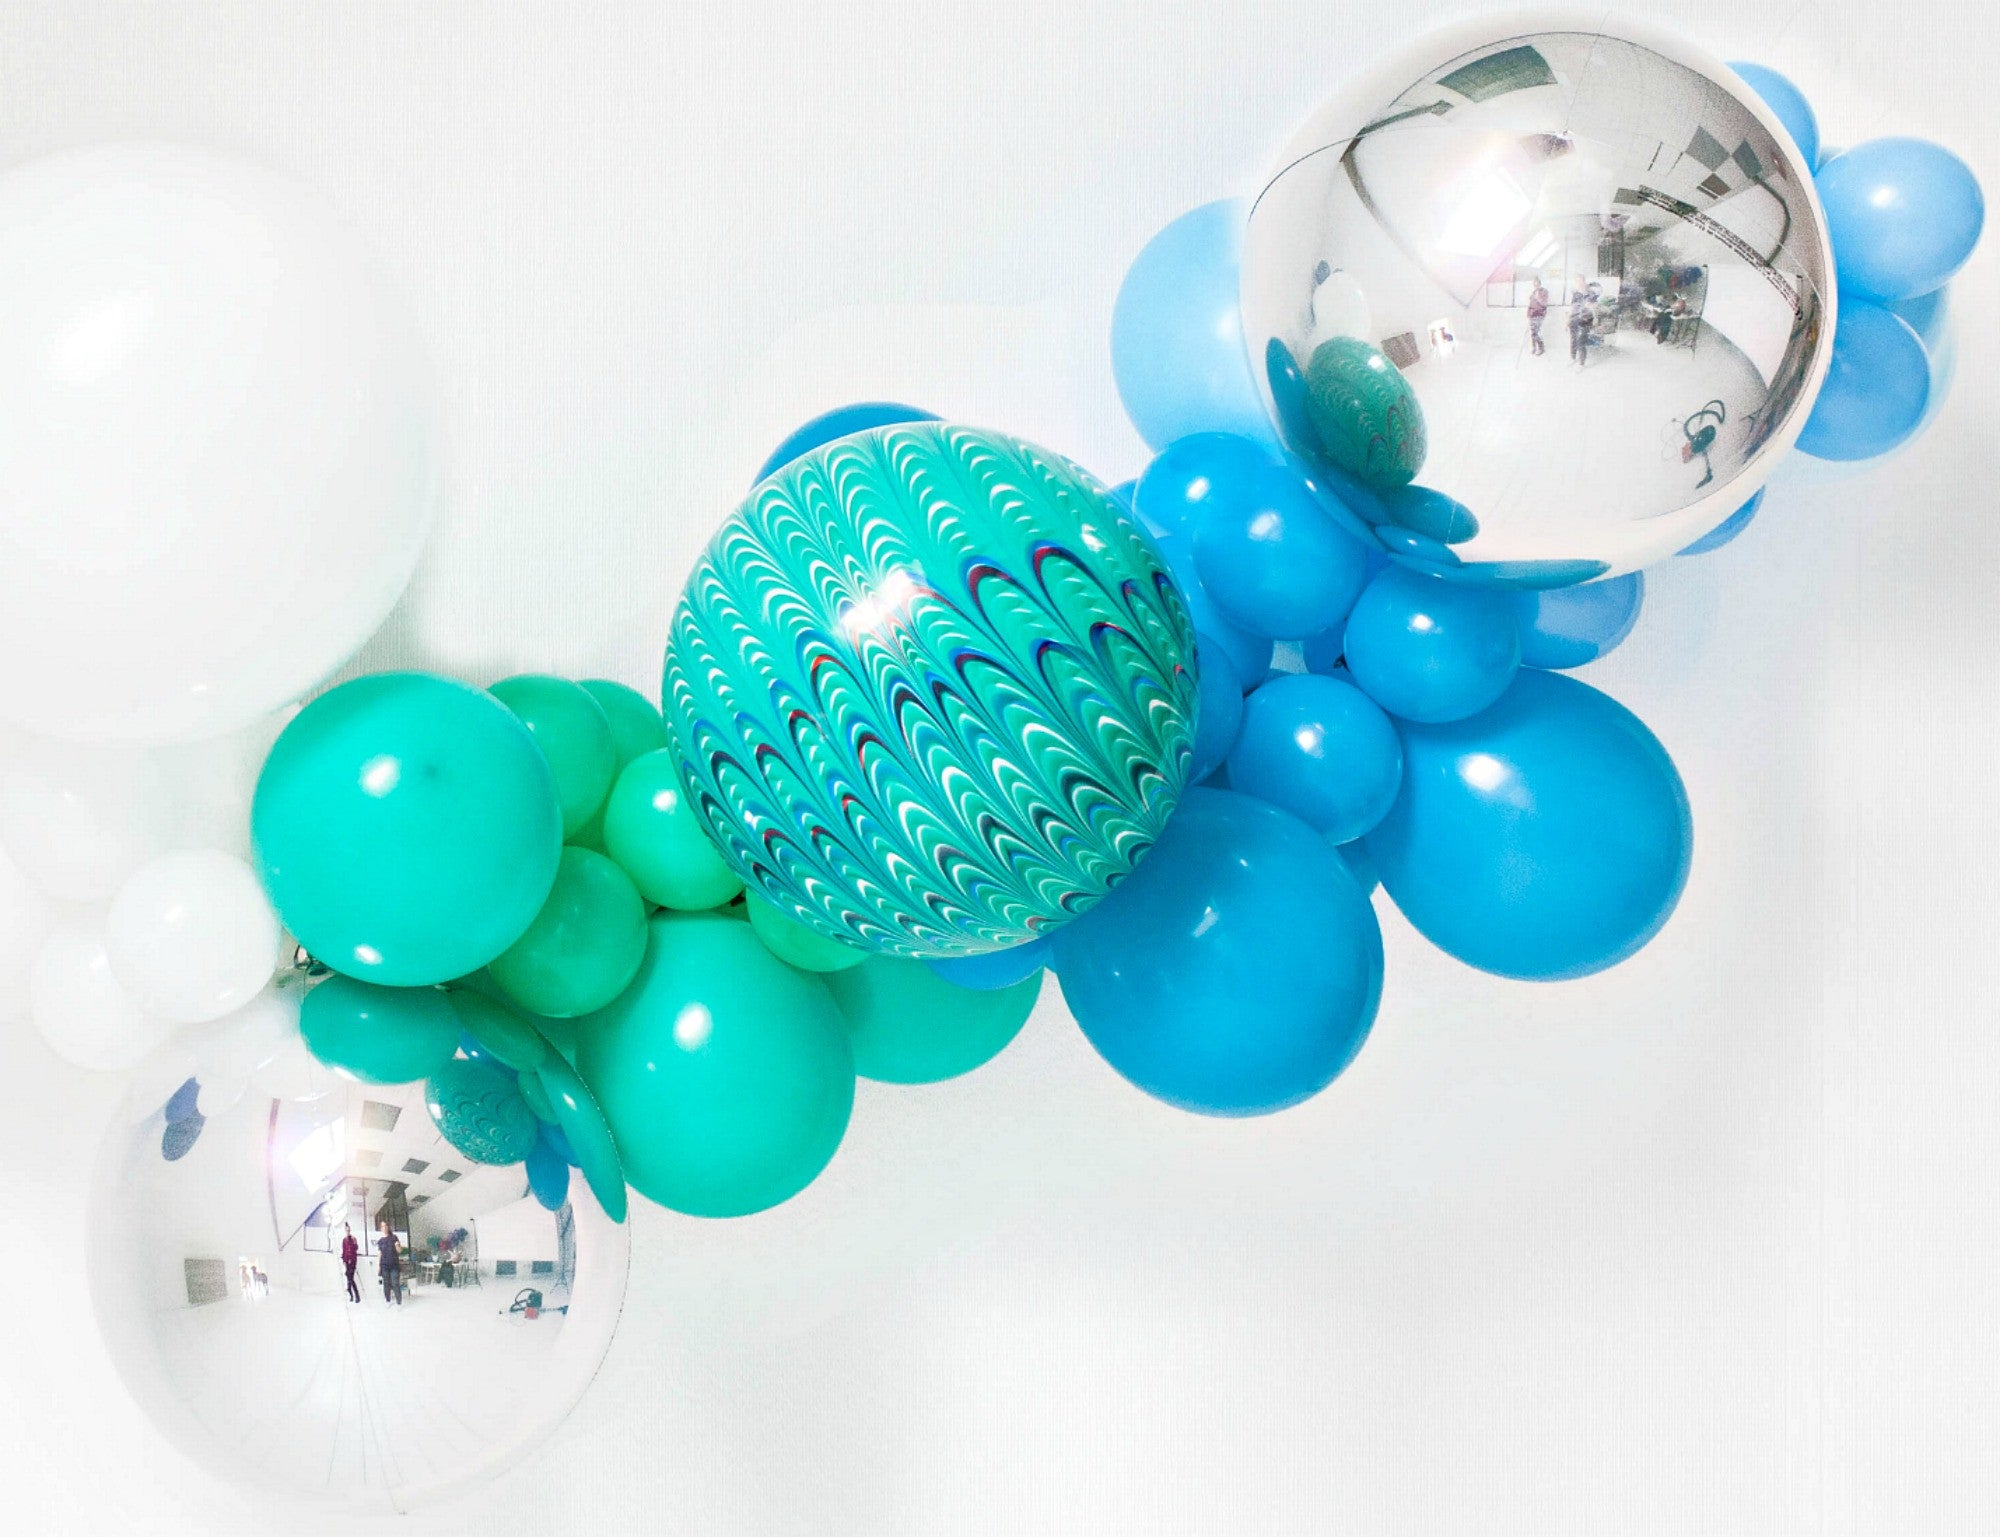 How to Inflate Orb Balloons with Air